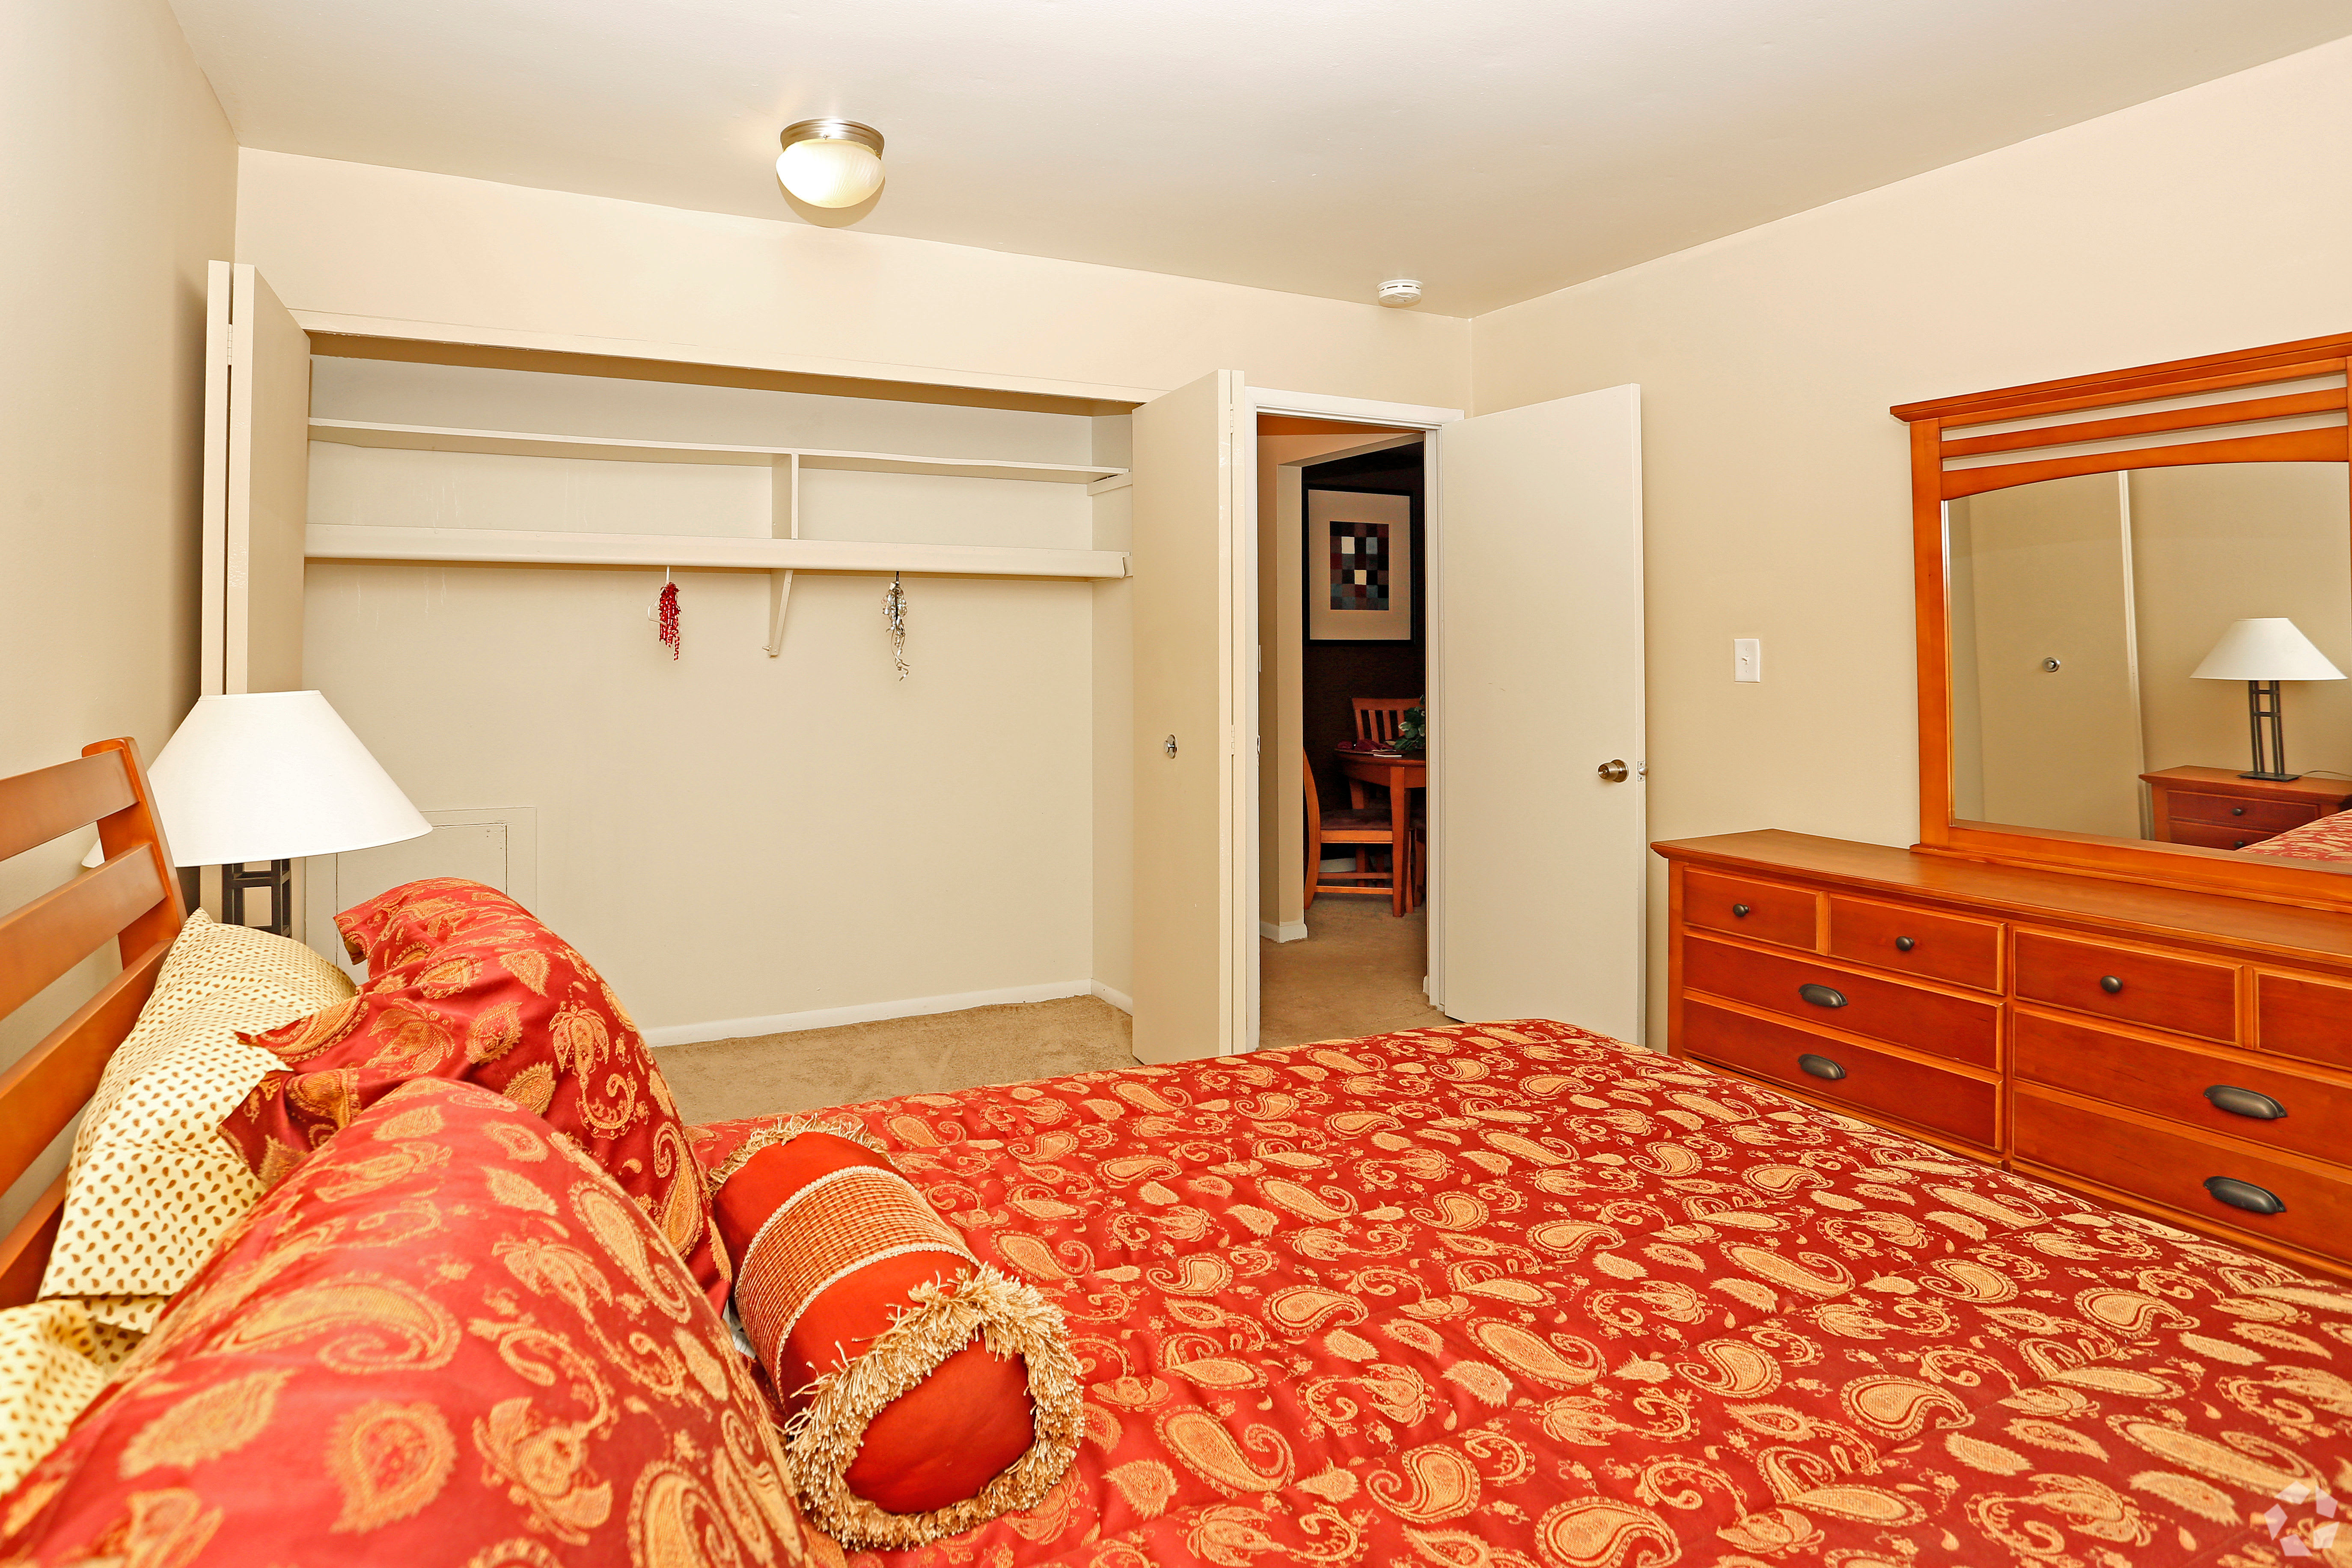 Enjoy a spacious bedroom at Hoover Square Apartments in Warren, Michigan